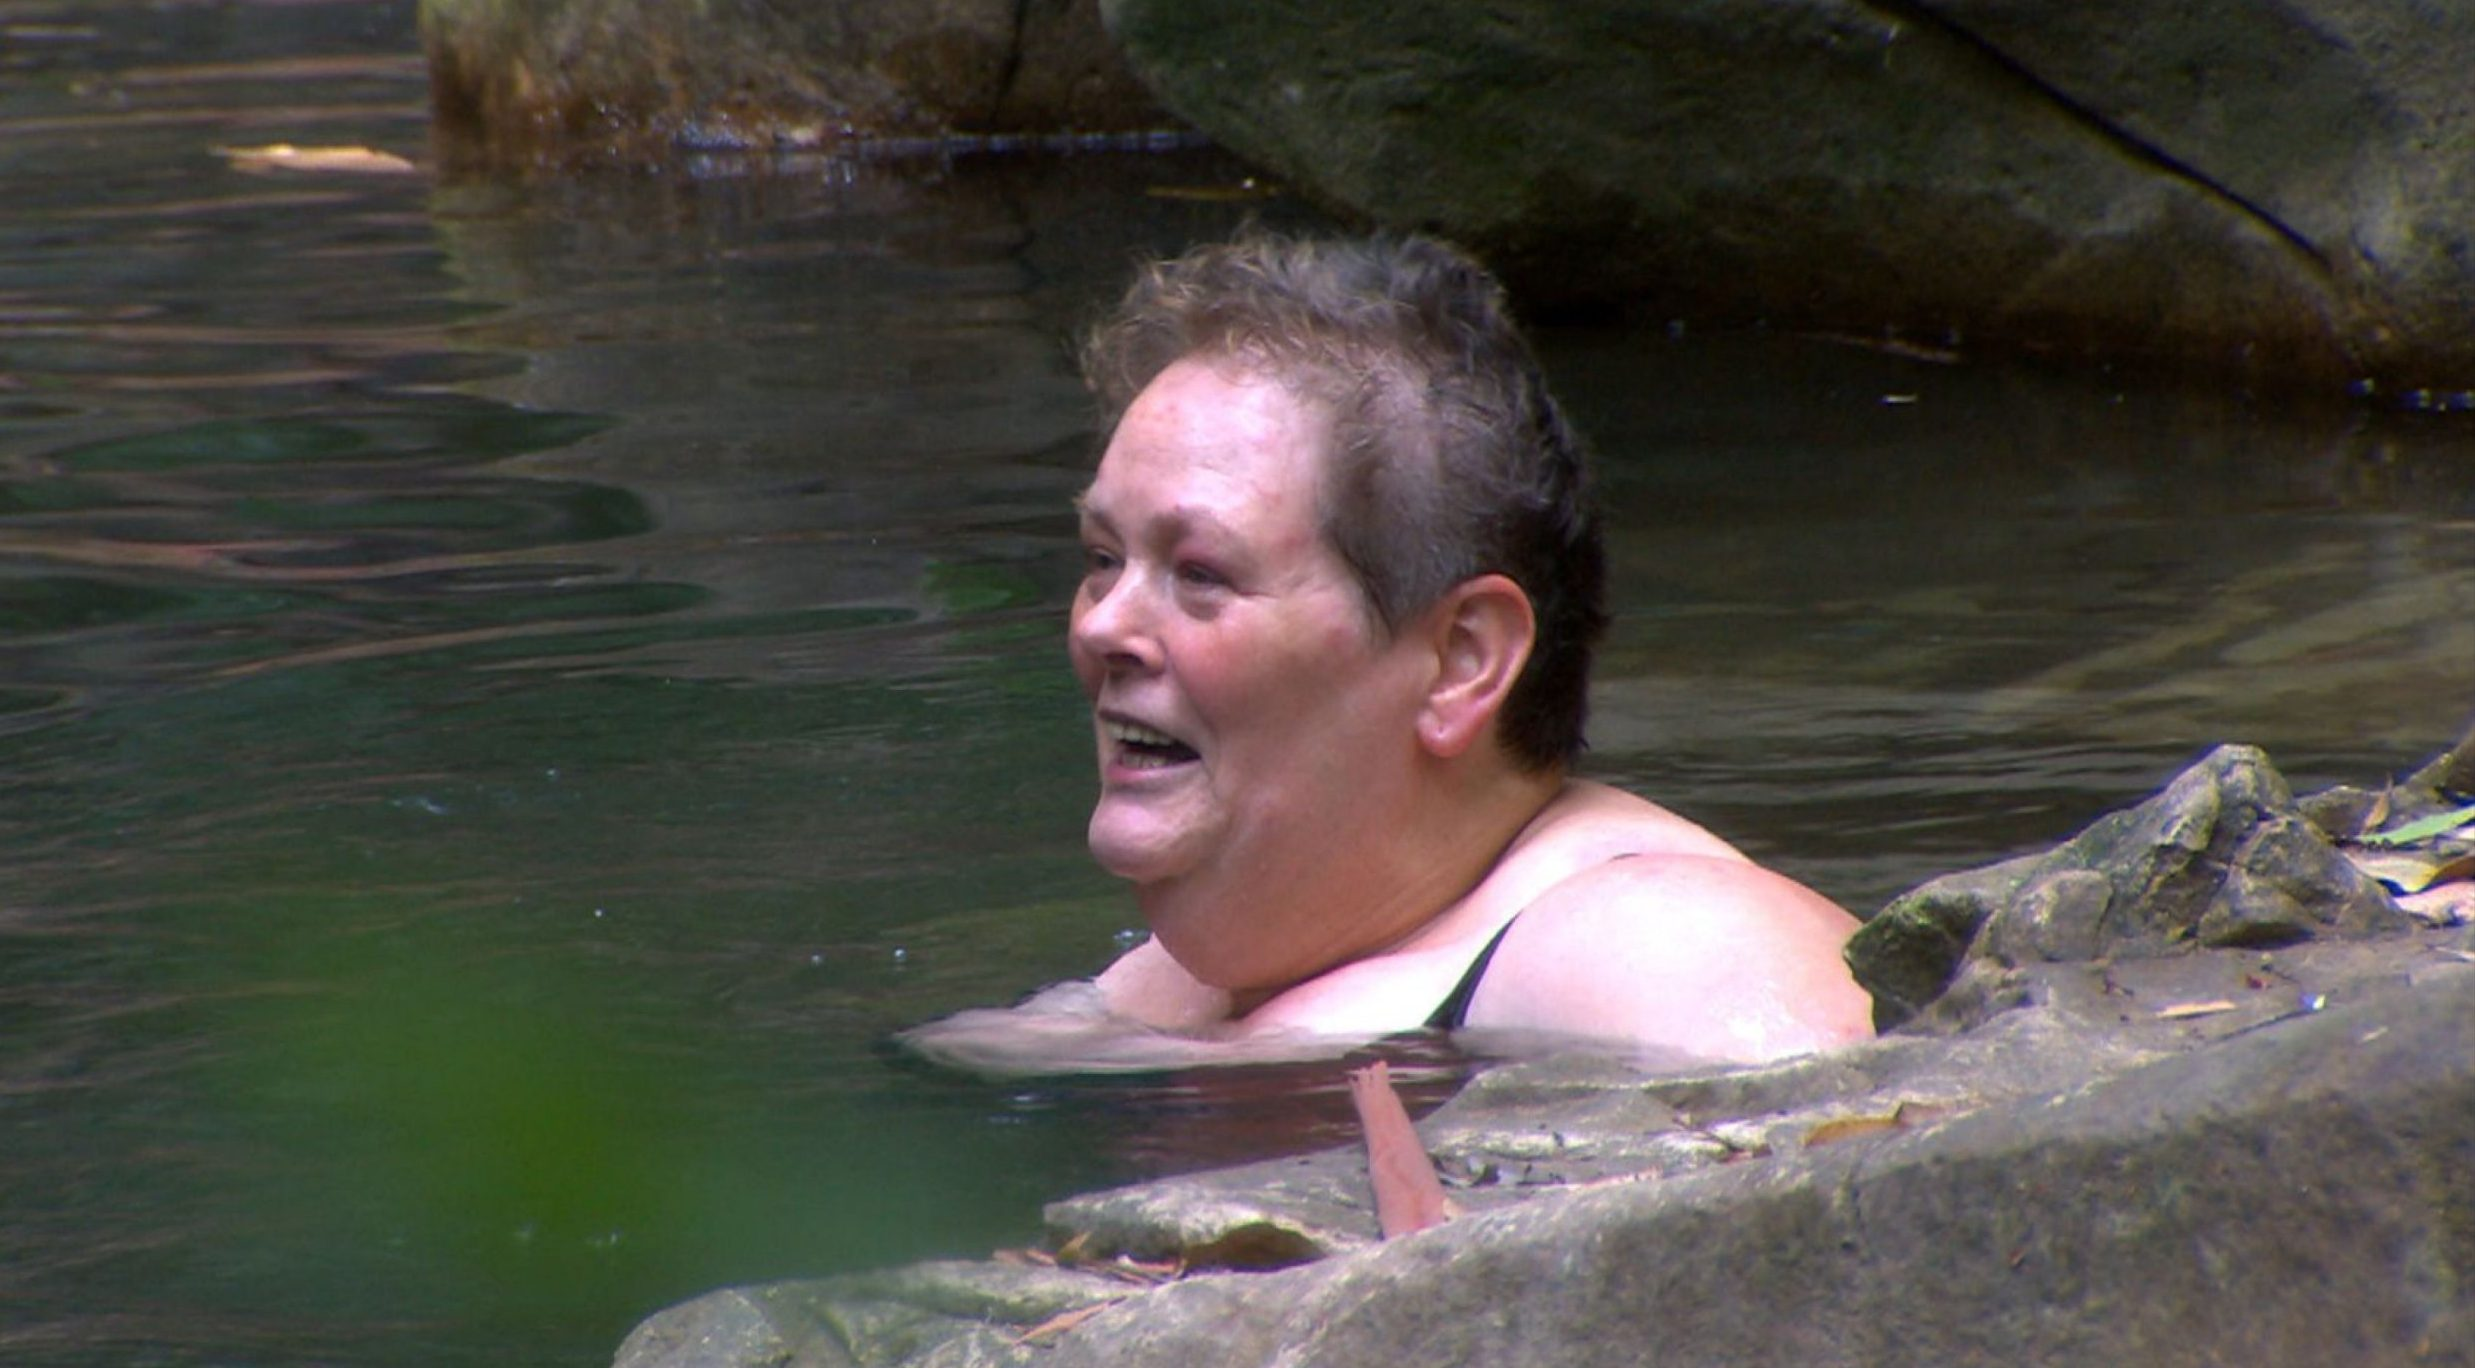 STRICT EMBARGO - NOT TO BE USED BEFORE 22:30 GMT, 29 NOV 2018 - EDITORIAL USE ONLY Mandatory Credit: Photo by ITV/REX (10003486bg) Creek and Pool Chat - Anne Hegerty 'I'm a Celebrity... Get Me Out of Here!' TV Show, Series 18, Australia - 29 Nov 2018